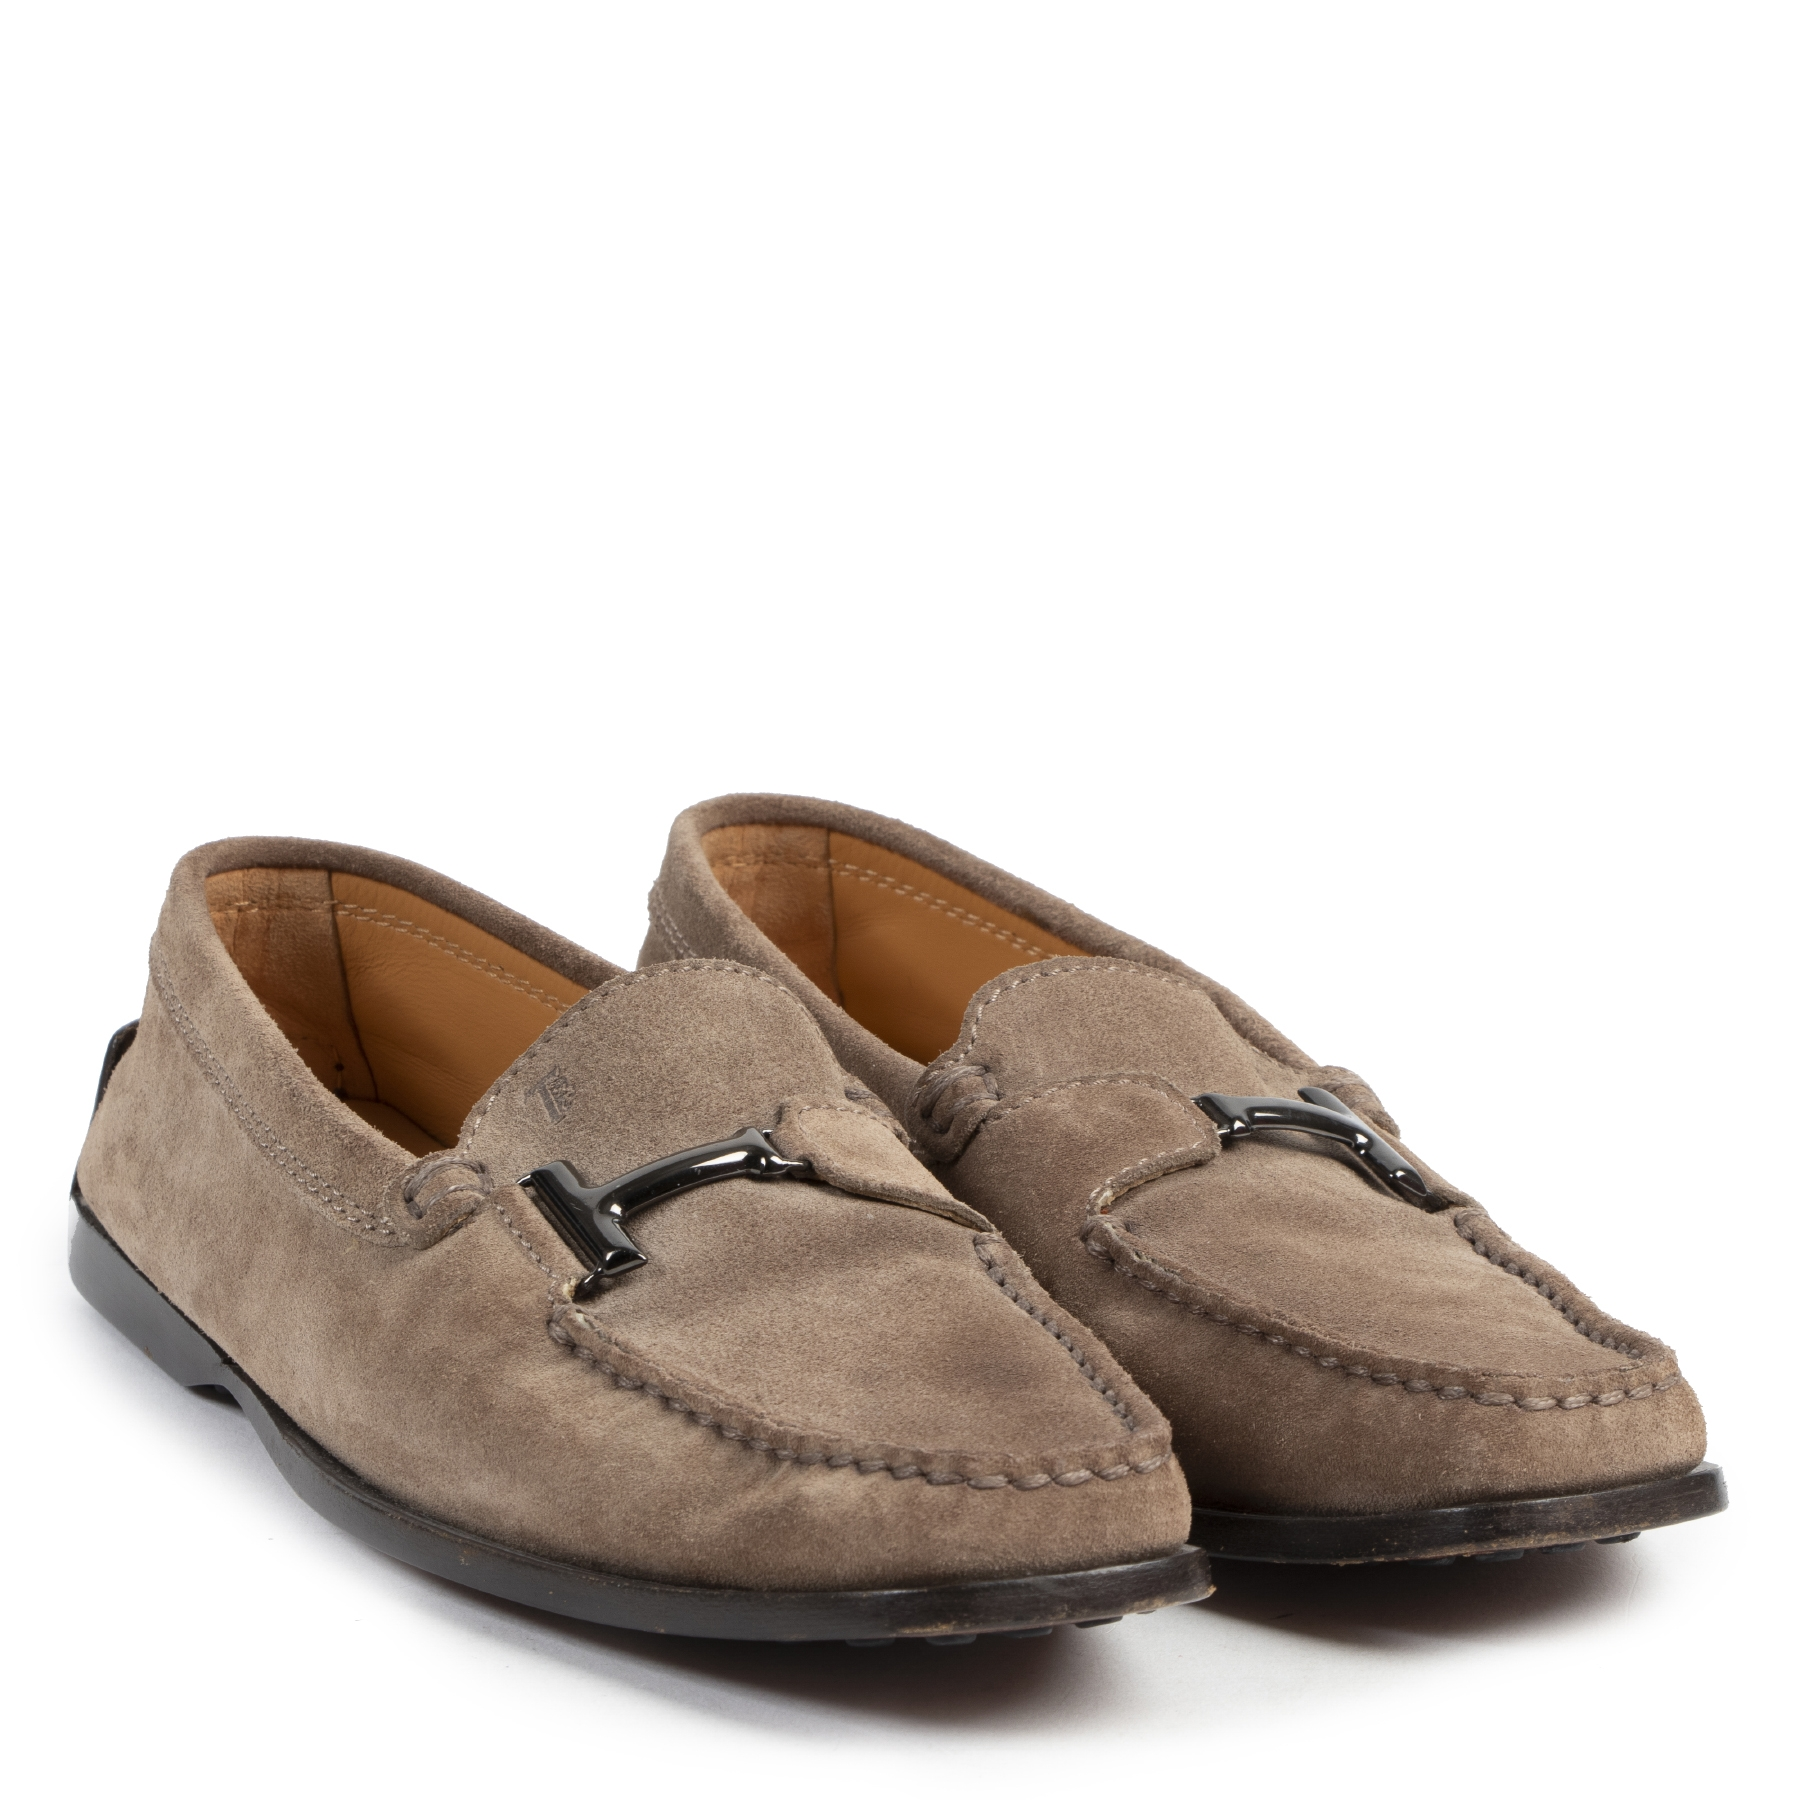 Tod's Taupe Suede Moccassin Flats - size 36.5 for sale